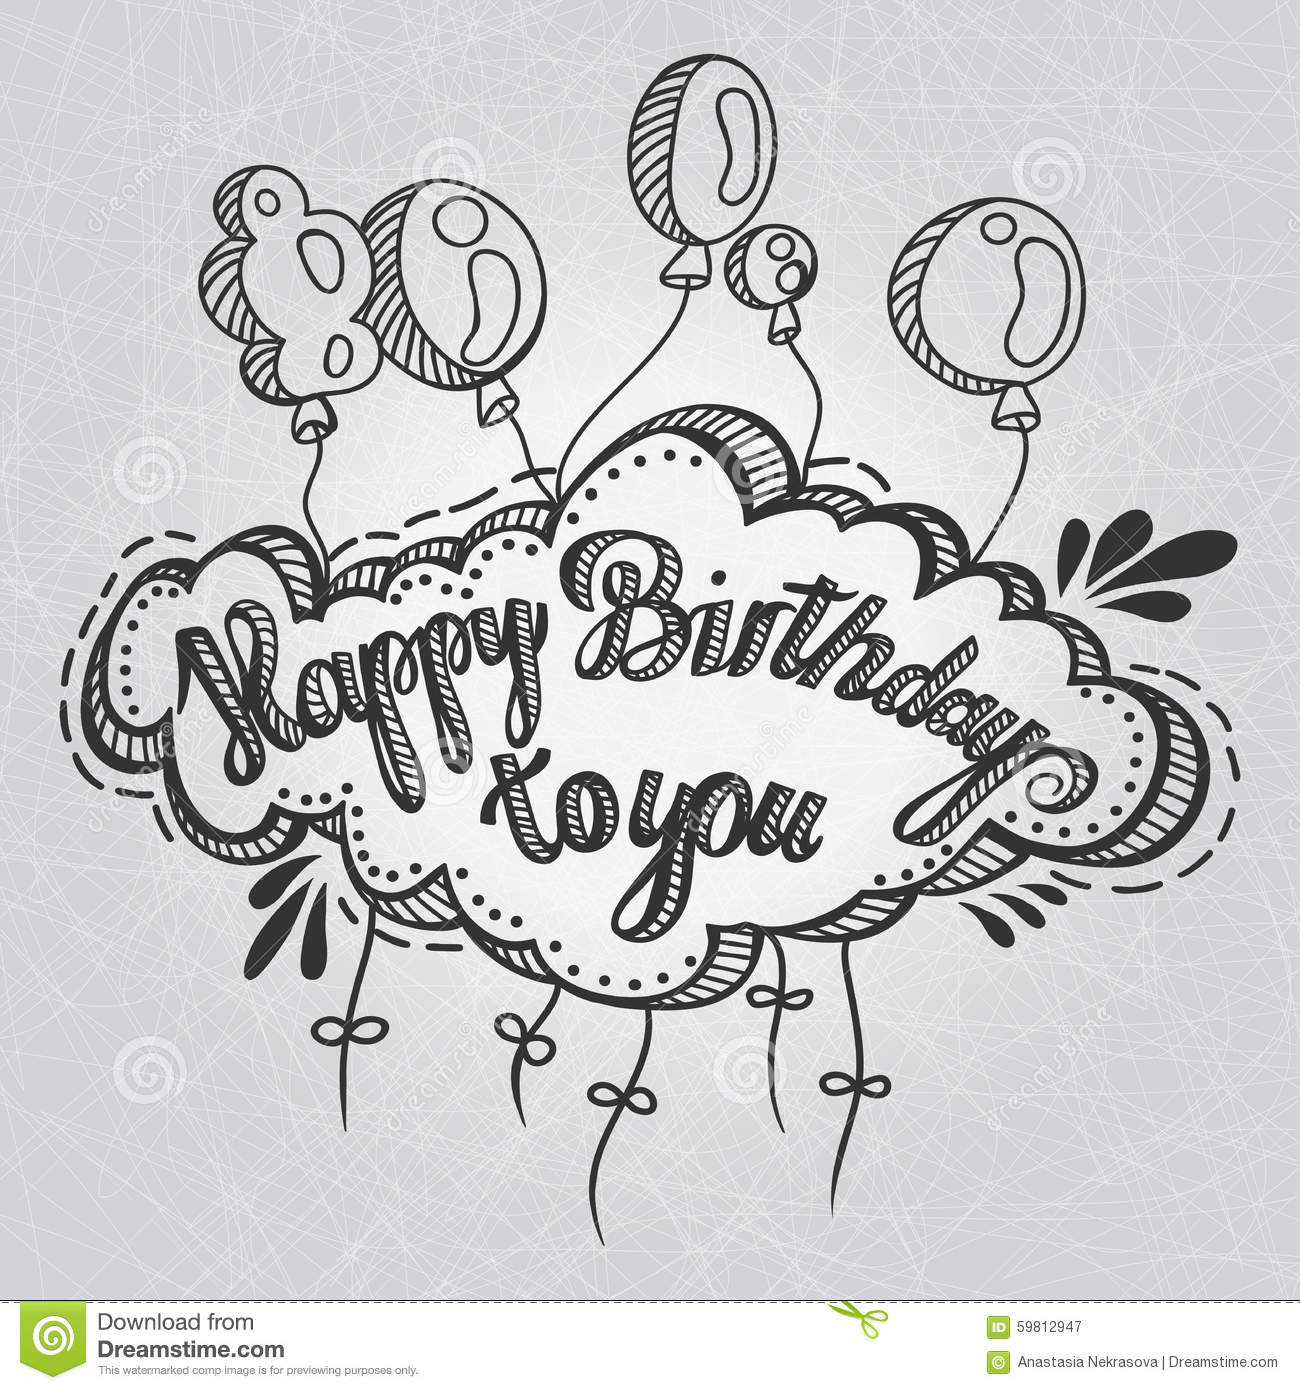 birthday drawing pictures ; greeting-card-happy-birthday-to-you-hand-drawing-greeting-inscription-balloons-hand-drawn-congratulations-holiday-59812947